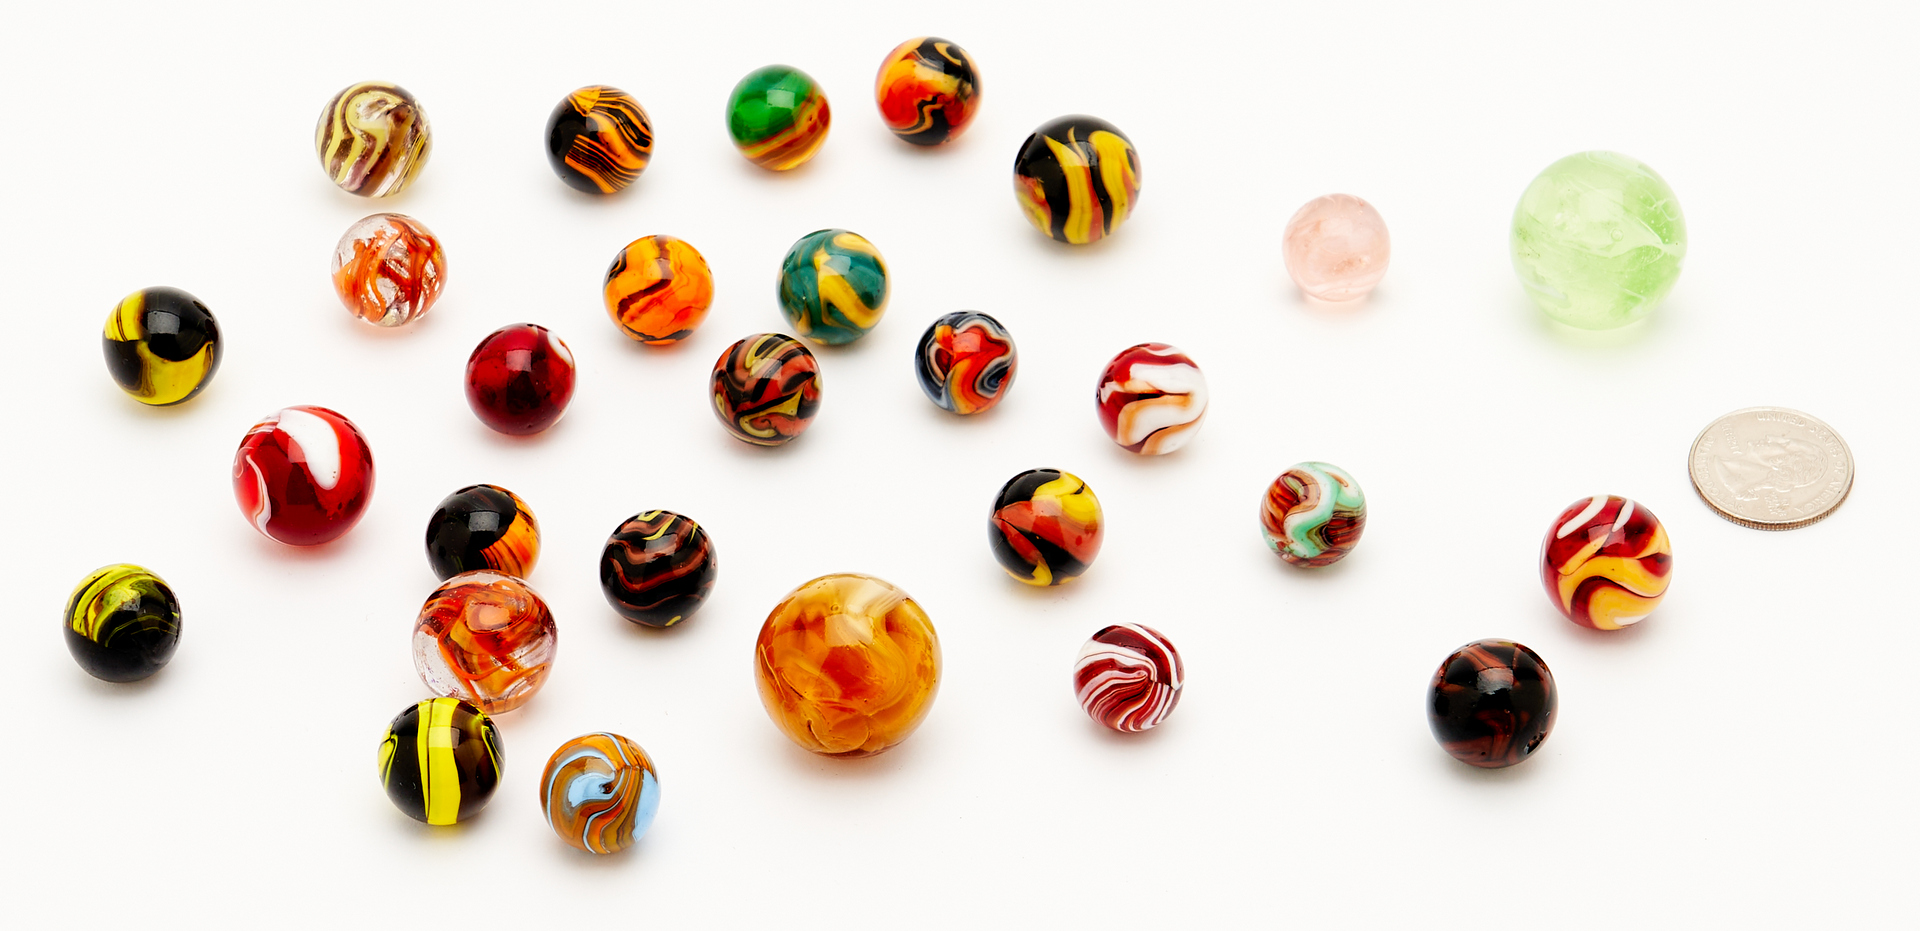 Lot 1064: 28 Marbles, Possibly Christensen Agate Company